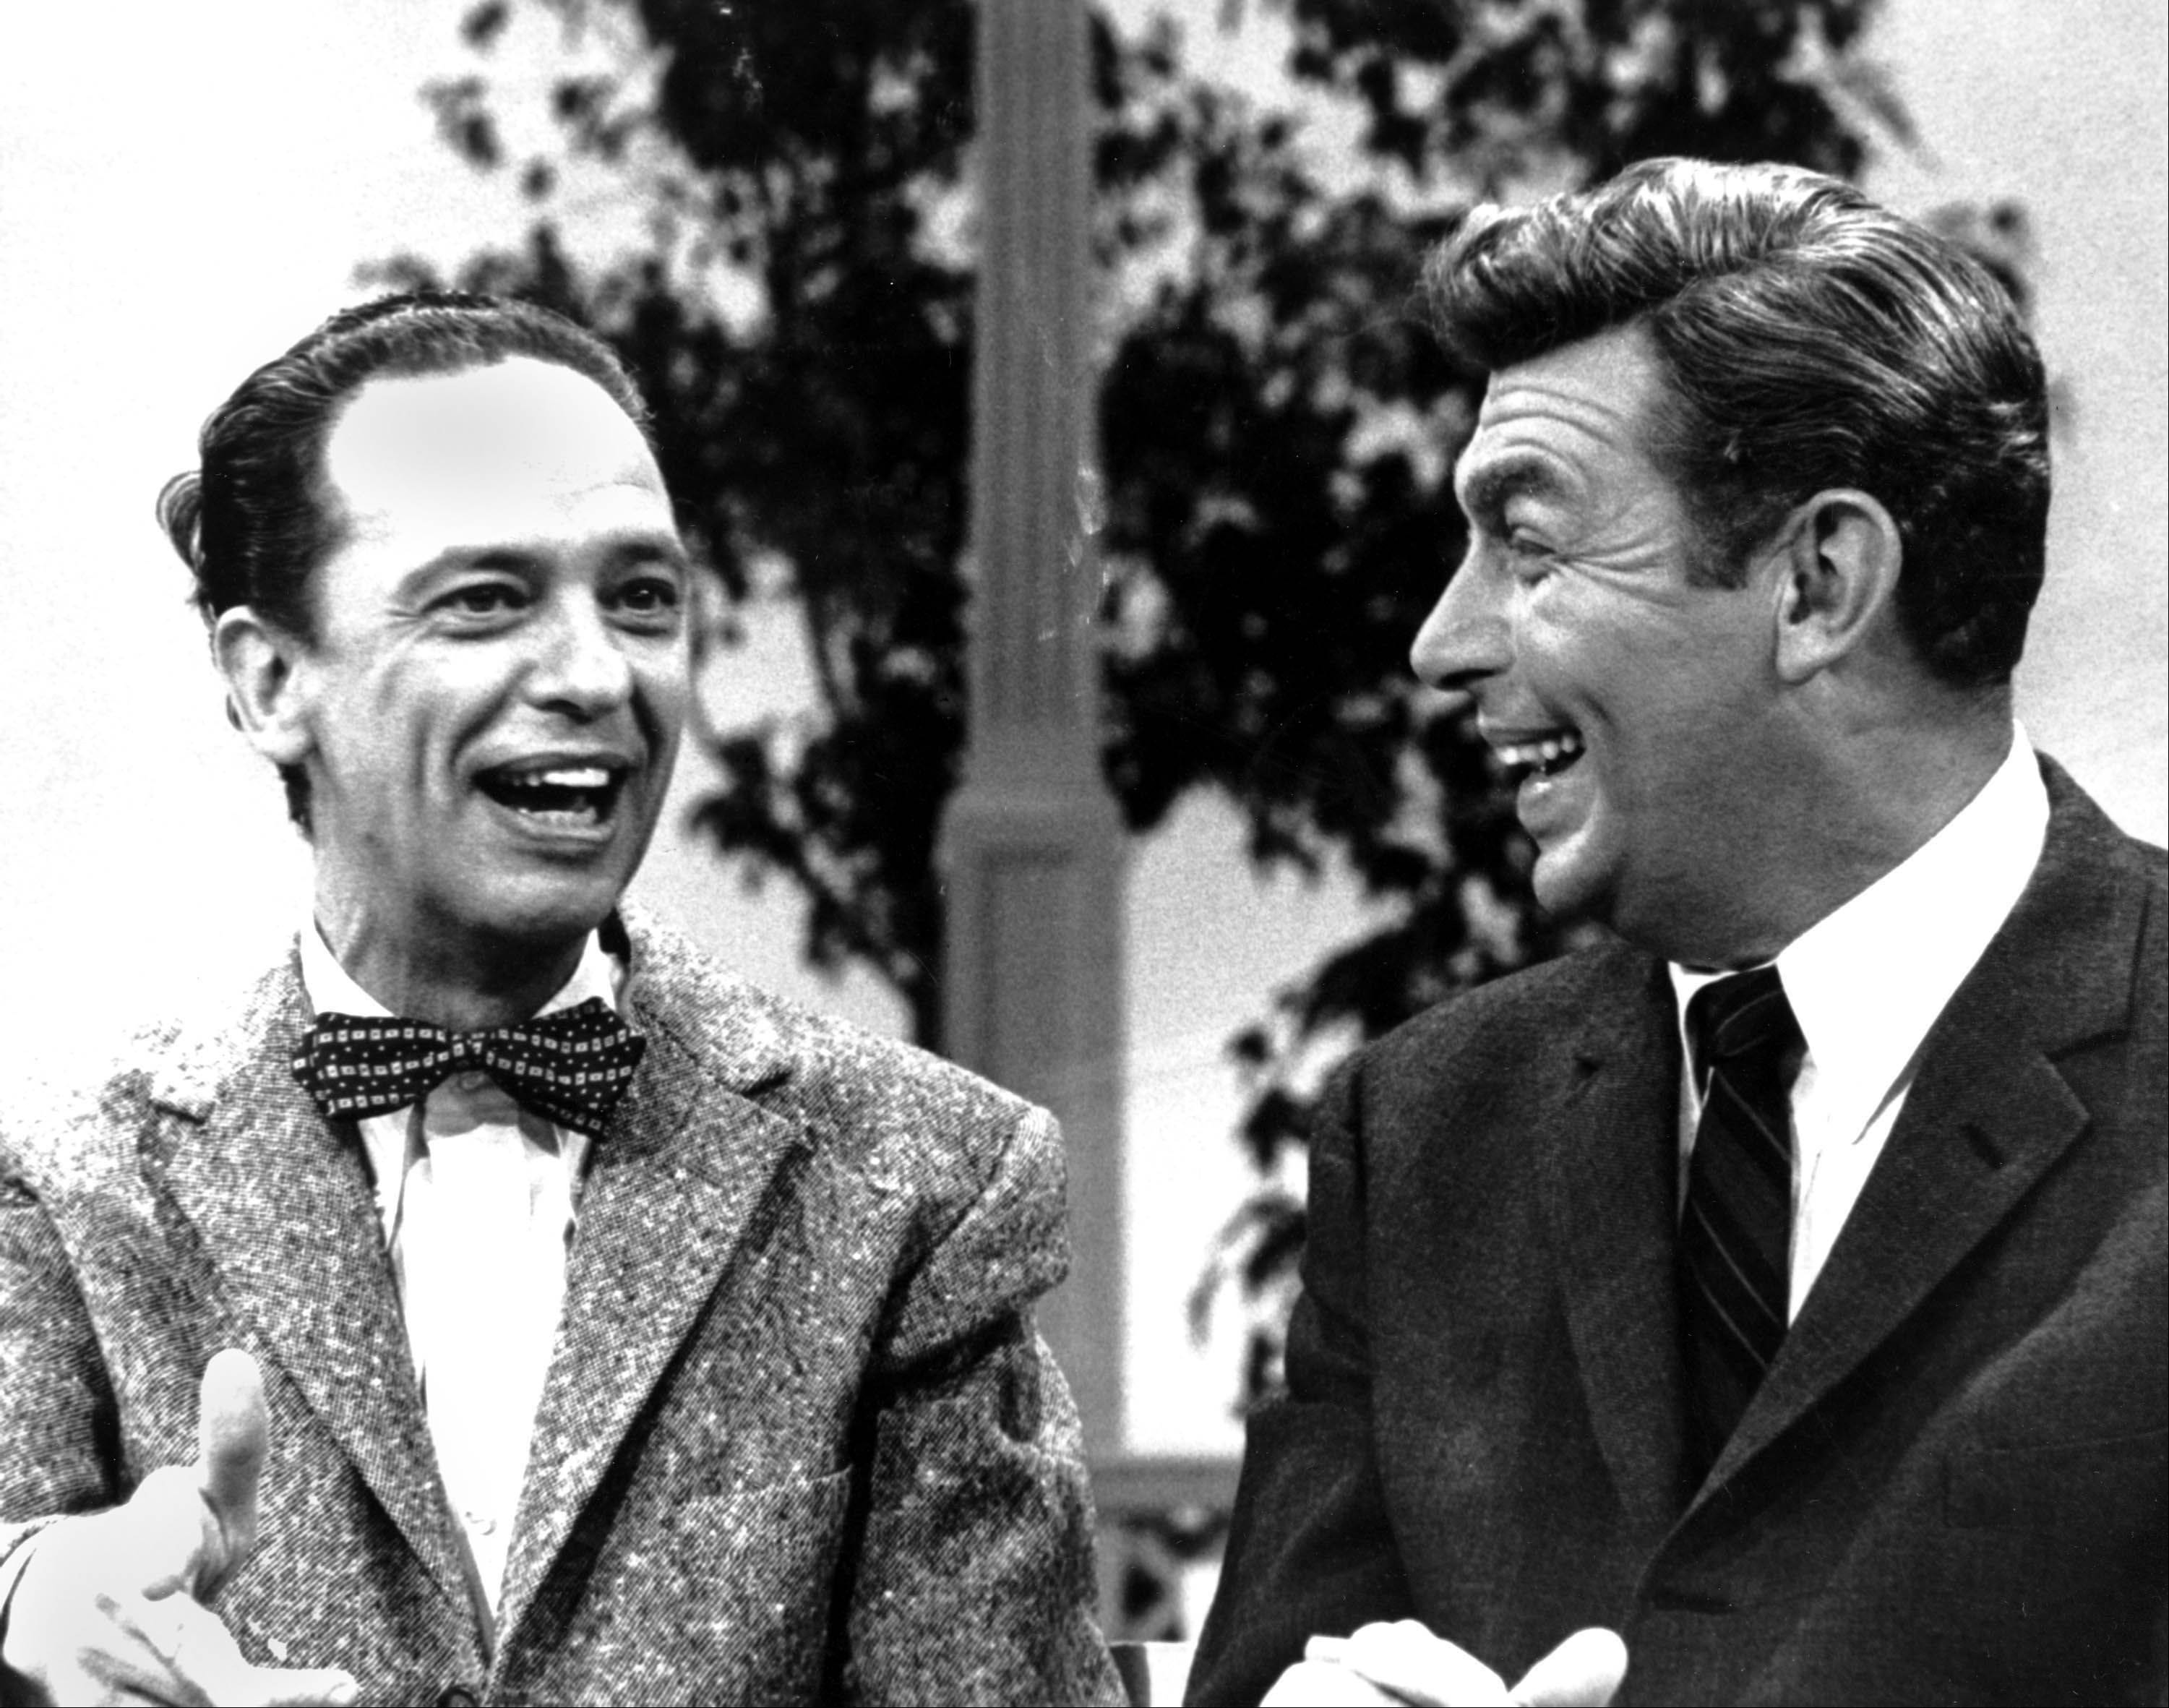 Andy Griffith laughs it up with Don Knotts while taping a television program on Oct. 20, 1967.